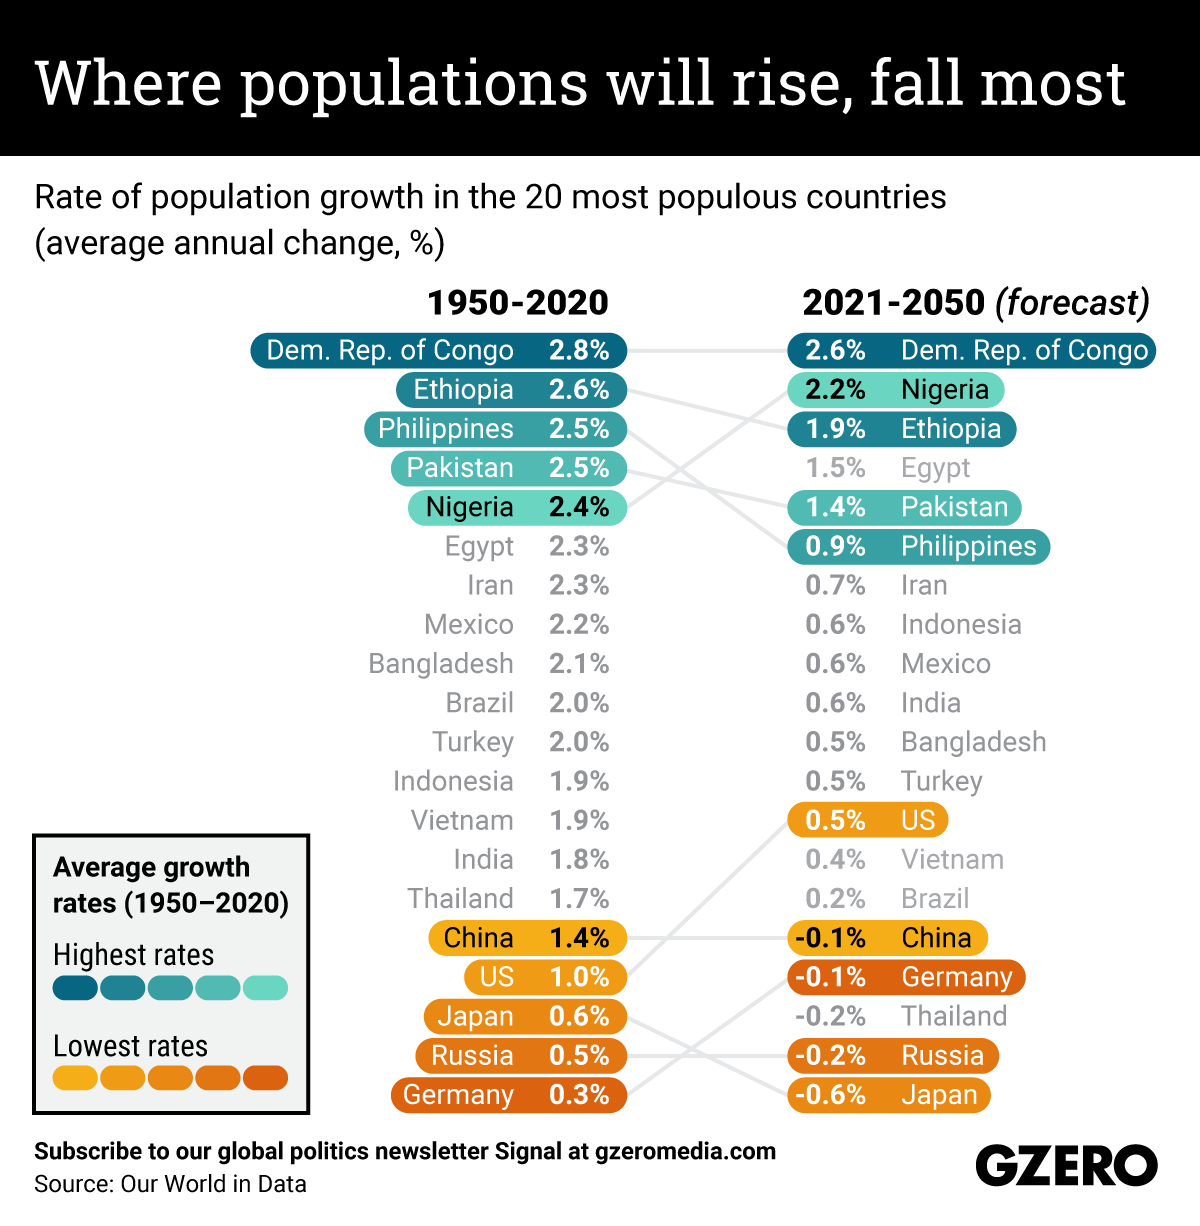 The Graphic Truth: Where populations will rise, fall most